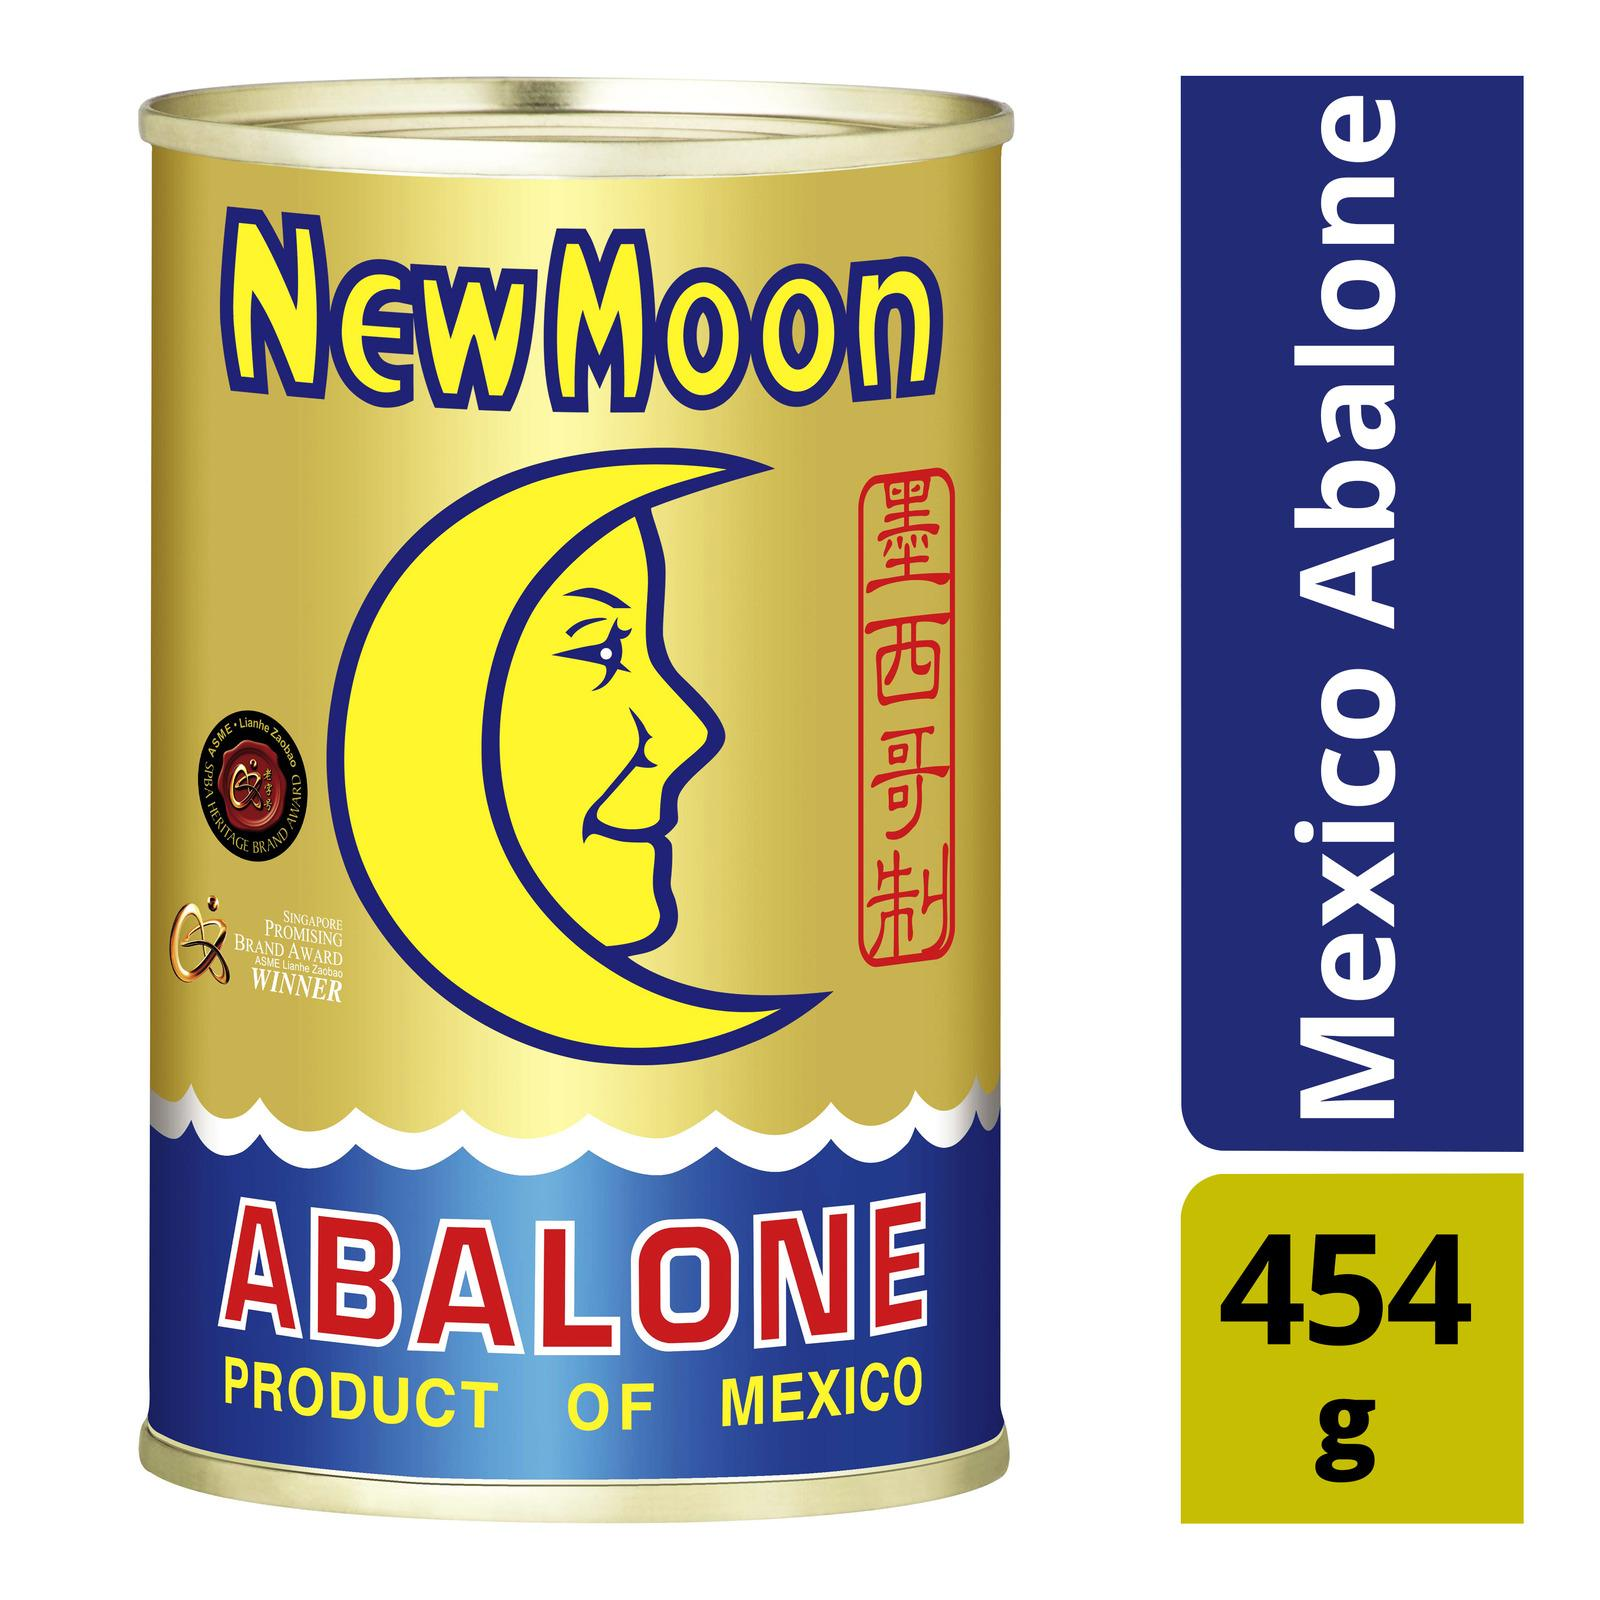 New Moon - Abalone Mexico - 454g - 3pcs By Best Buy Mini Mart.